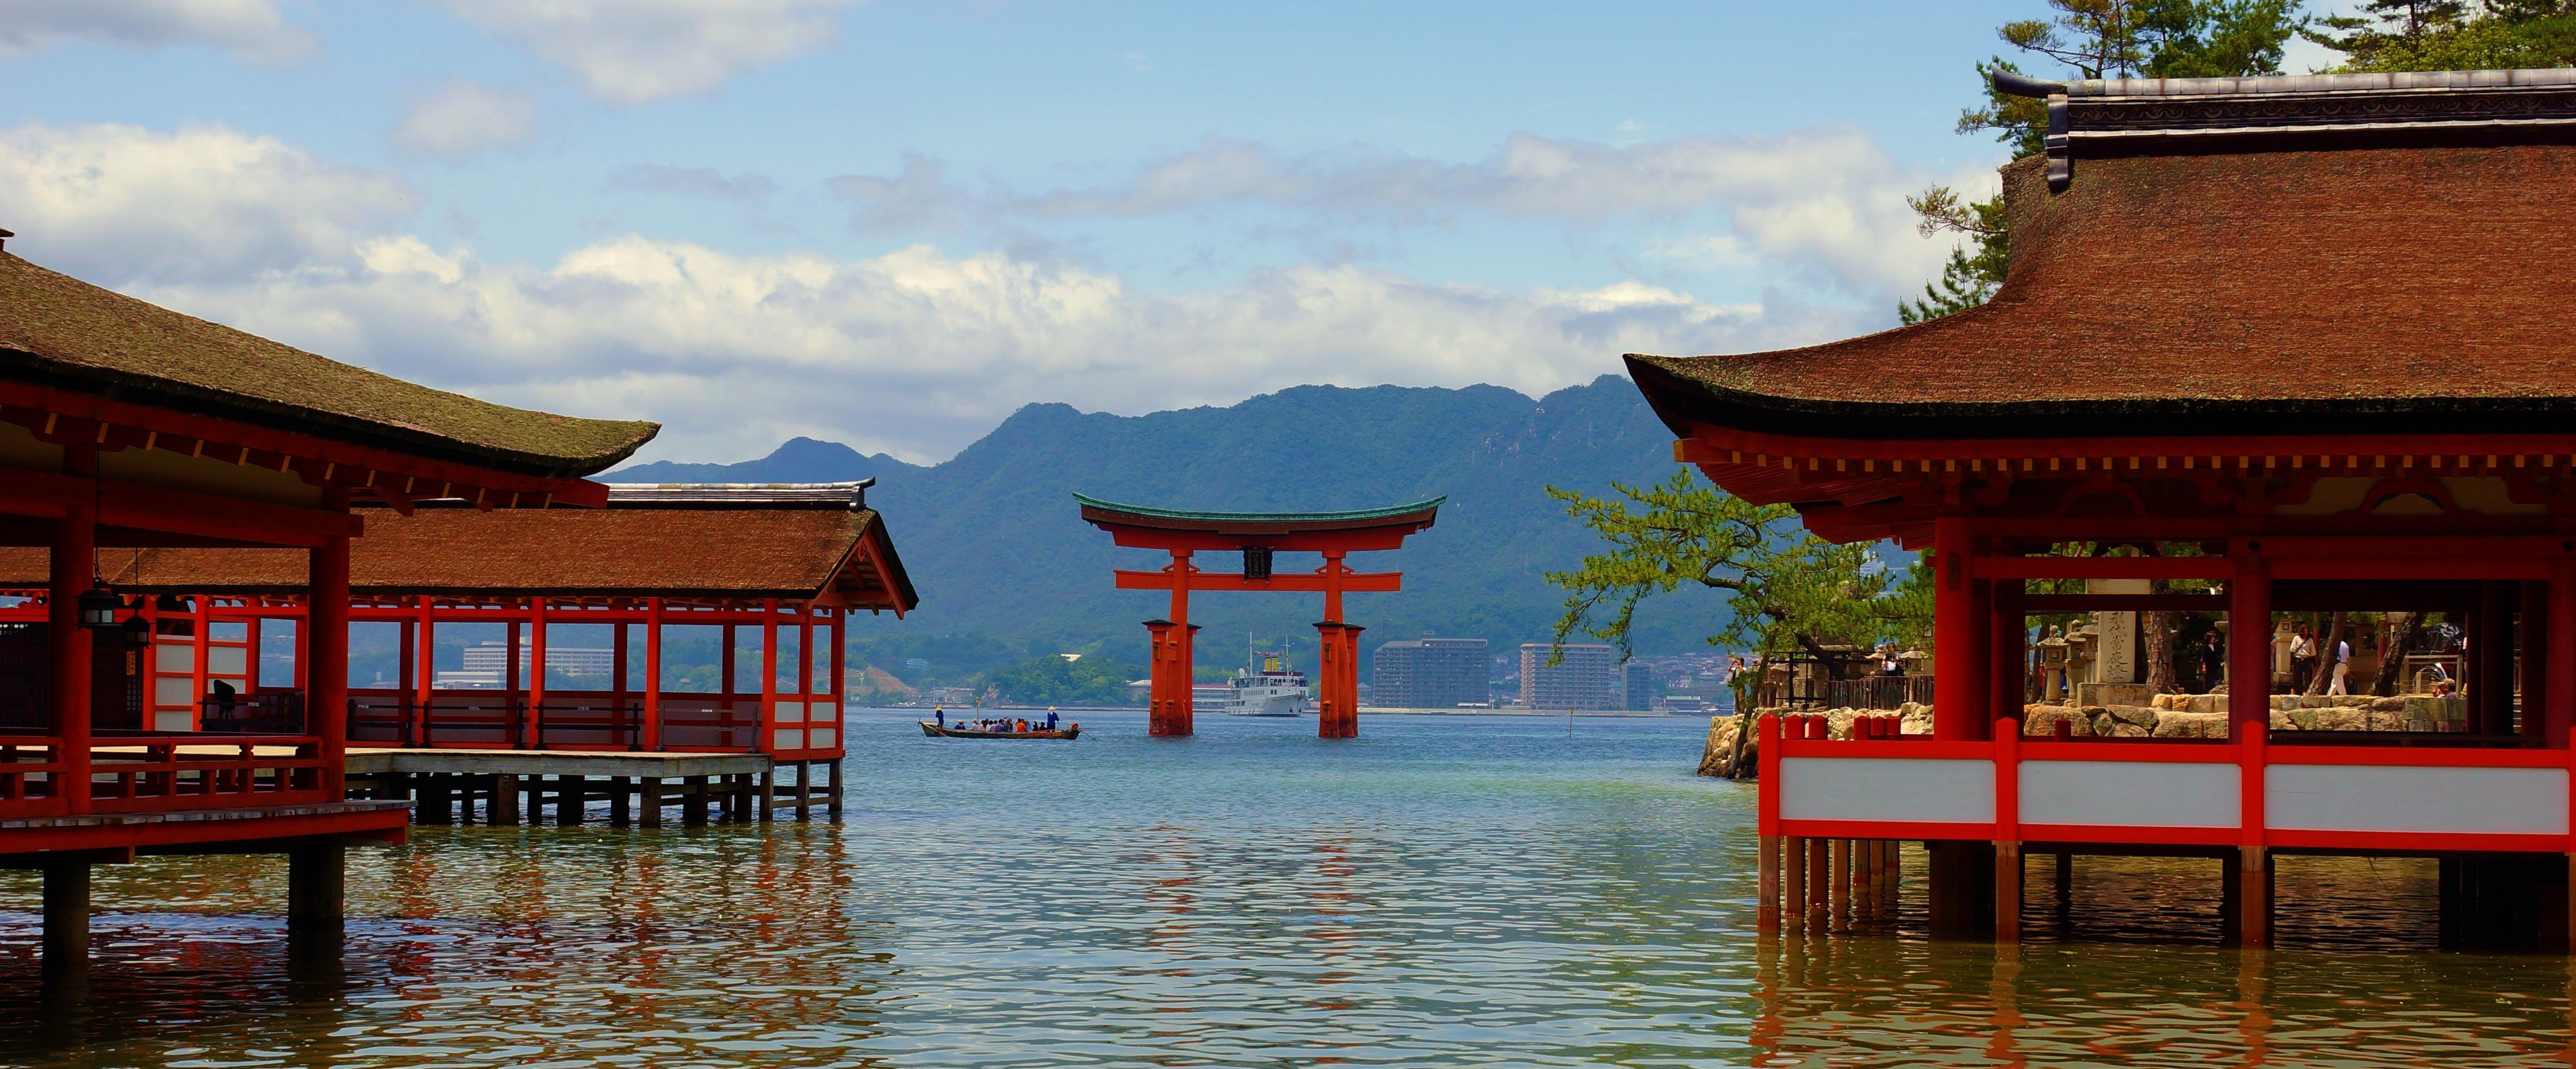 Itsukushima shrine Miyajima Japan